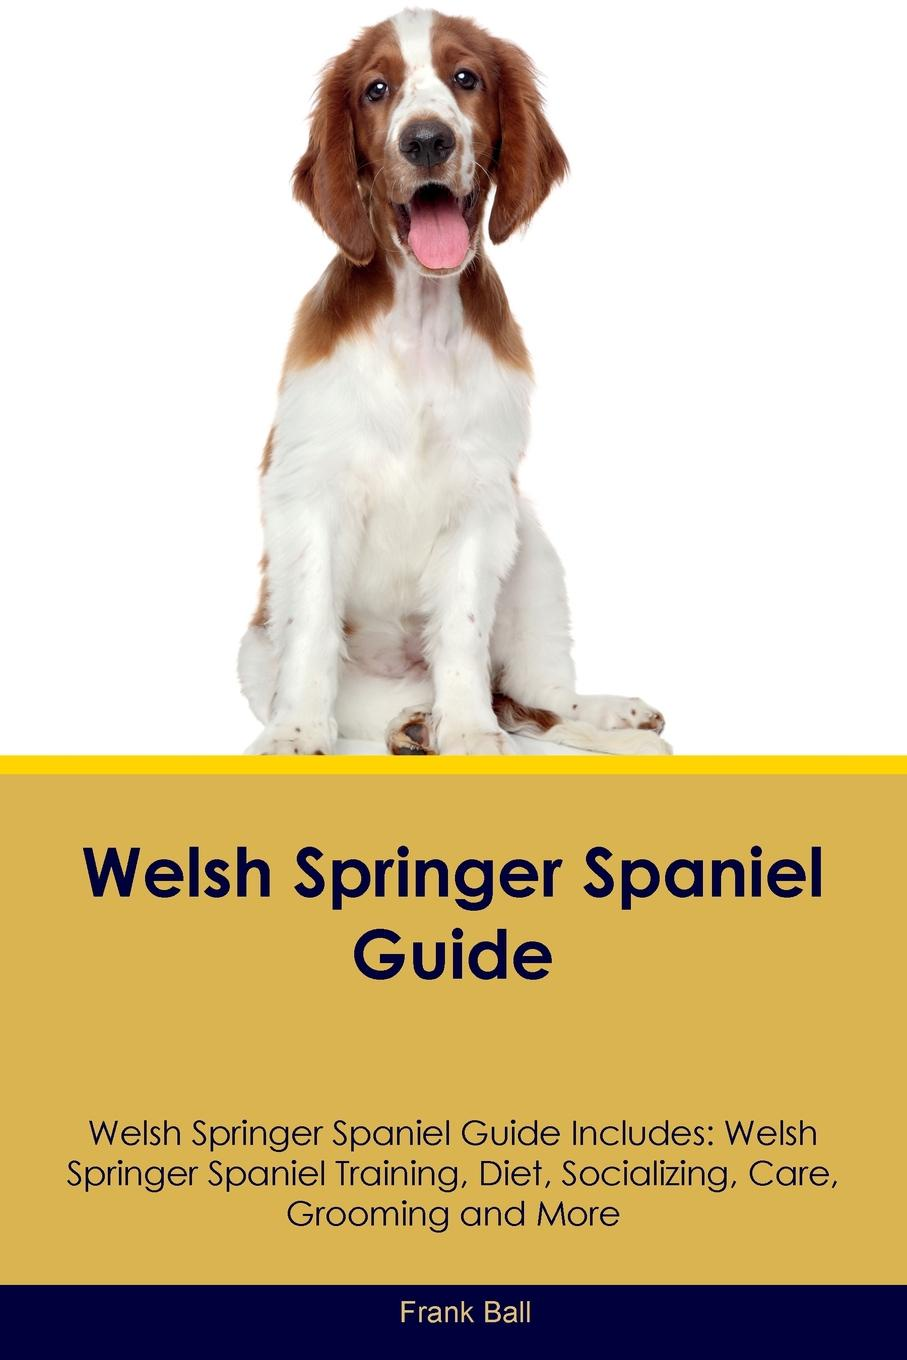 Frank Ball Welsh Springer Spaniel Guide Welsh Springer Spaniel Guide Includes. Welsh Springer Spaniel Training, Diet, Socializing, Care, Grooming, Breeding and More t jones a guide to welsh part i